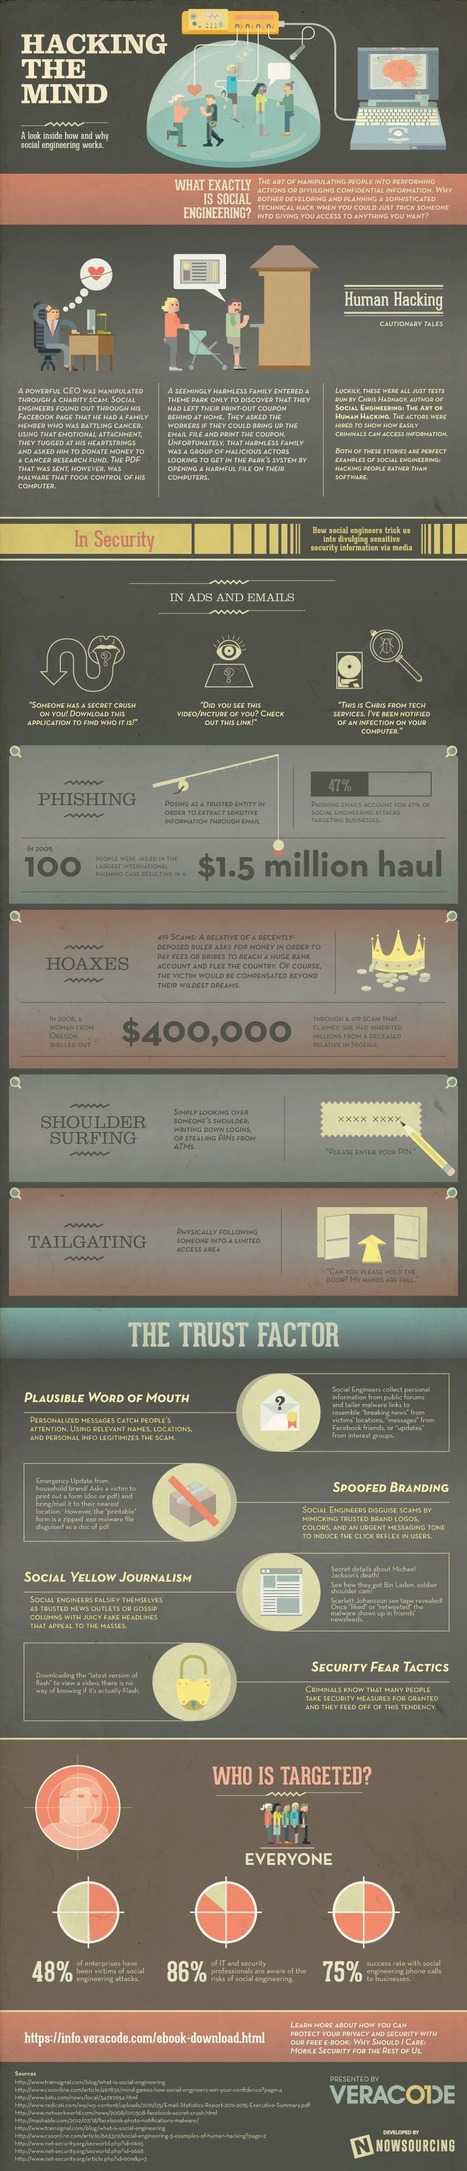 How and Why Social Engineering Works [Infographic] | Image & Media | Scoop.it